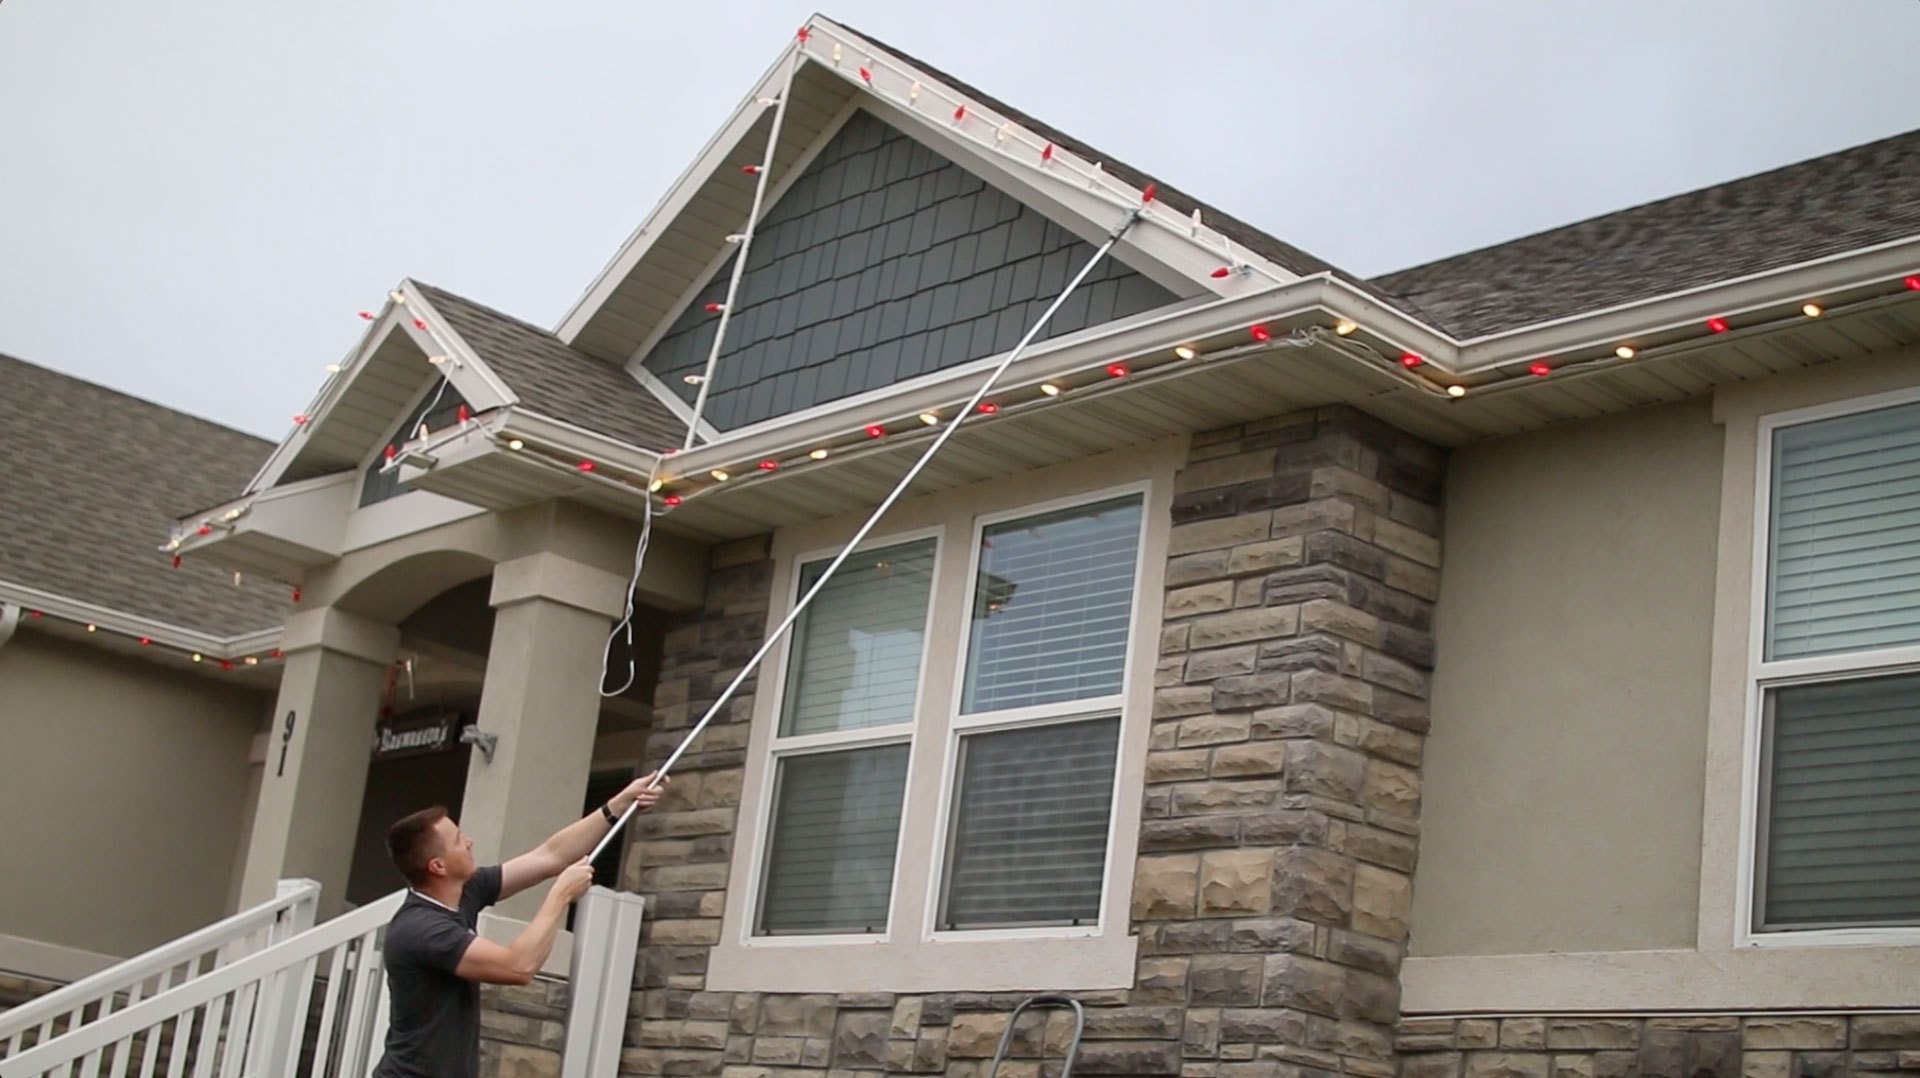 Best Way To Hang Christmas Lights On Roof